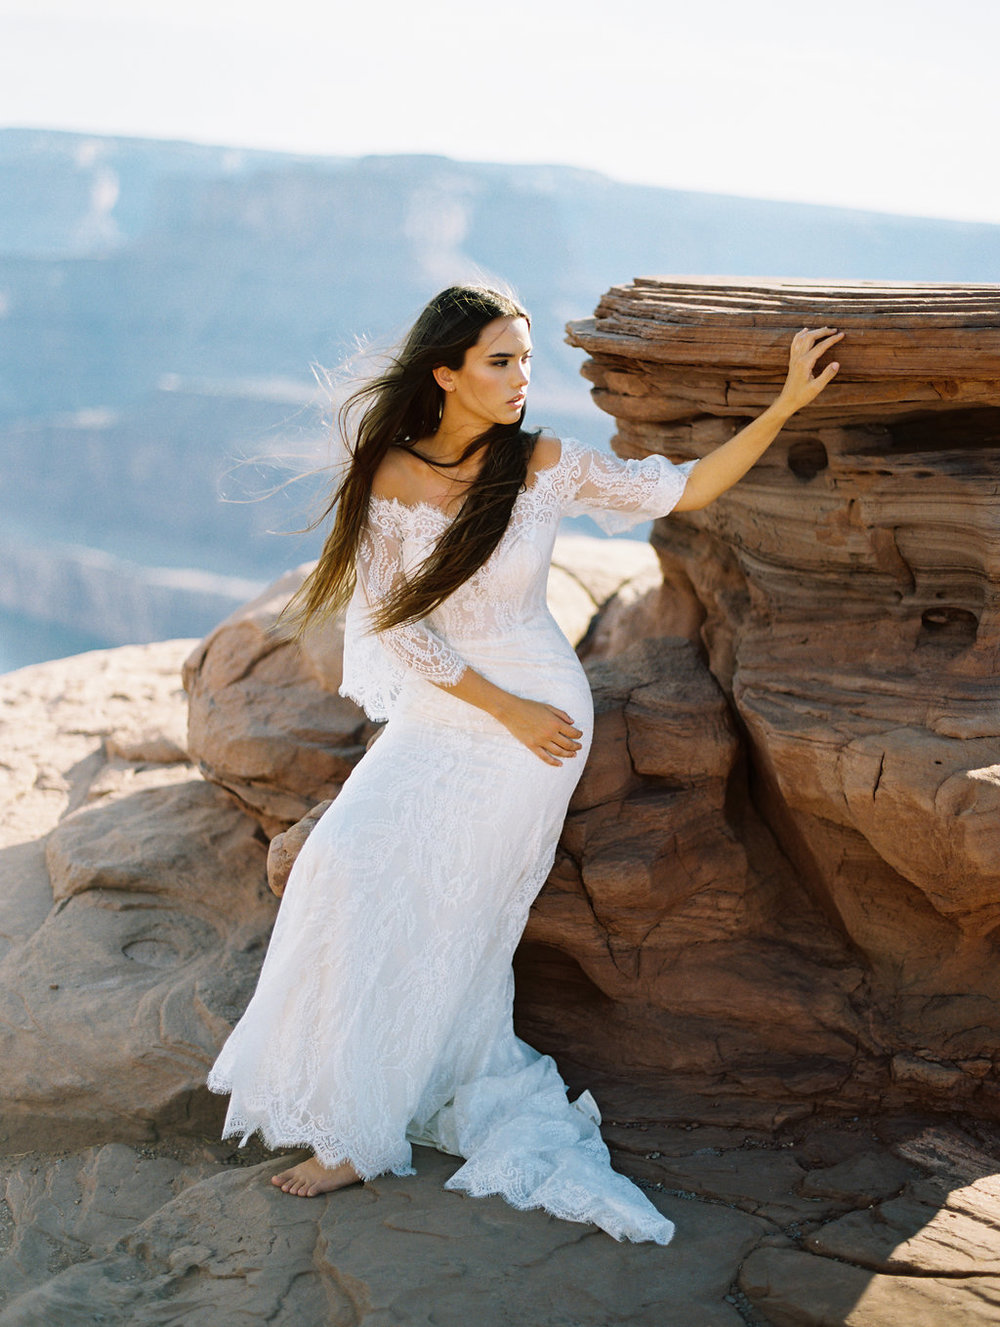 Boho Wedding Dresses | Inventory # 02282 | available at Bride To Be Couture | 6040 Fair Oaks Blvd. Carmichael, CA 95608 | 916.972.8223 | @bridetobecouture